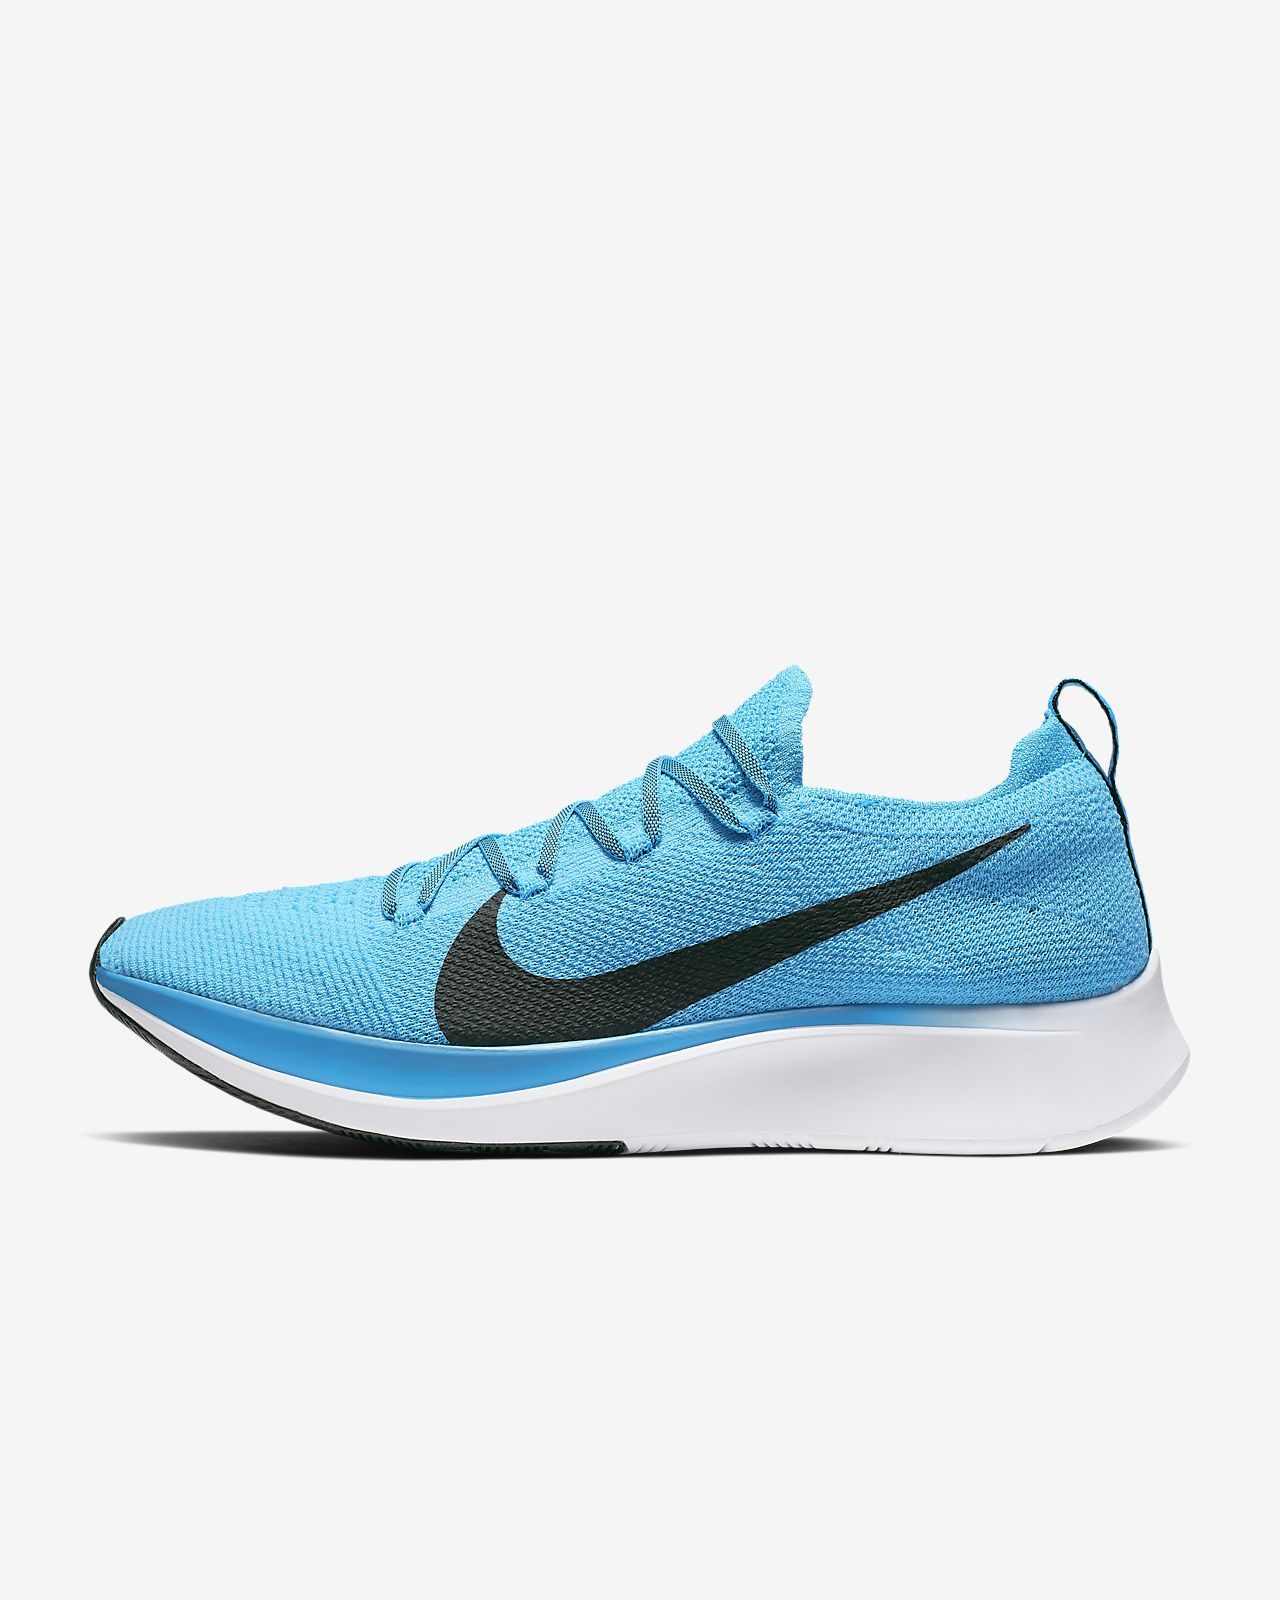 3de73805f856 Nike Zoom Fly Flyknit Men s Running Shoe. Nike.com GB